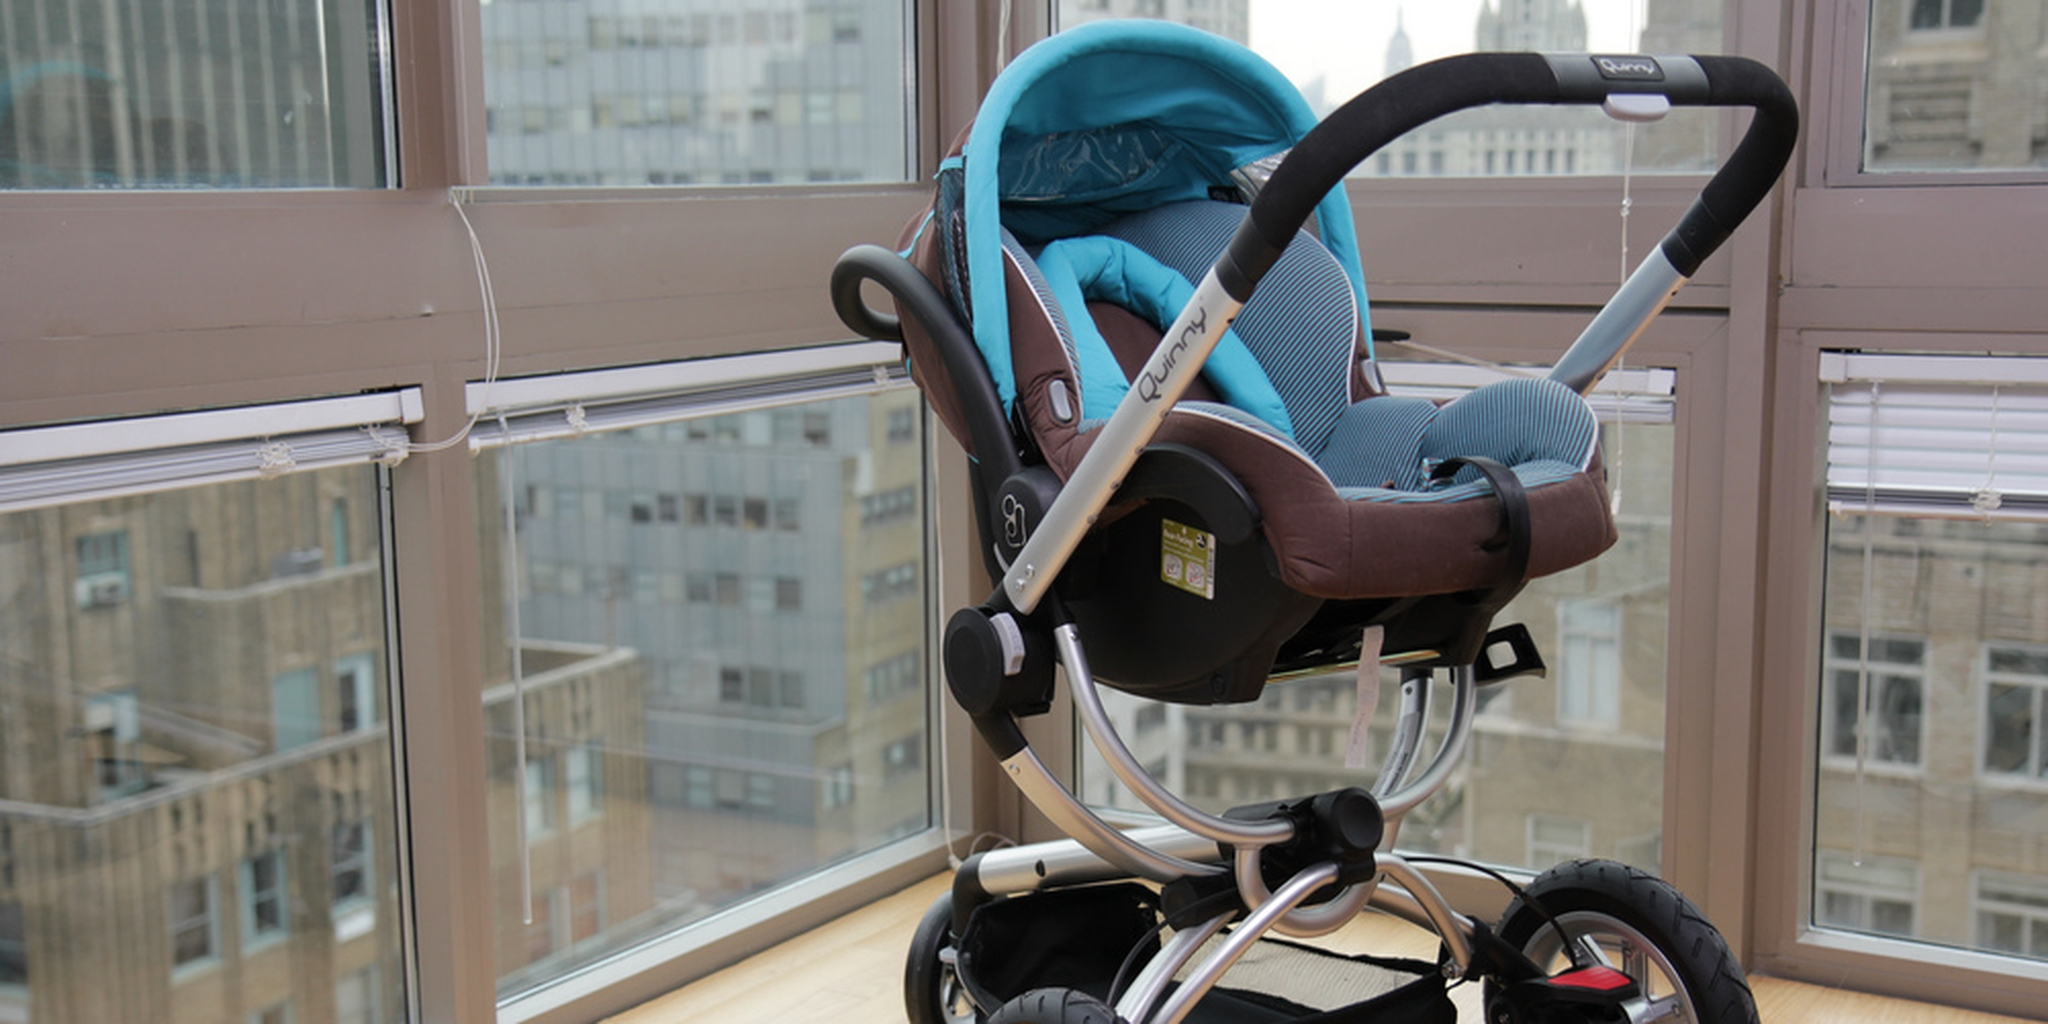 Quinny Buzz 3 with Maxi-Cosi Mico infant car seat | Flickr - Photo Sharing!